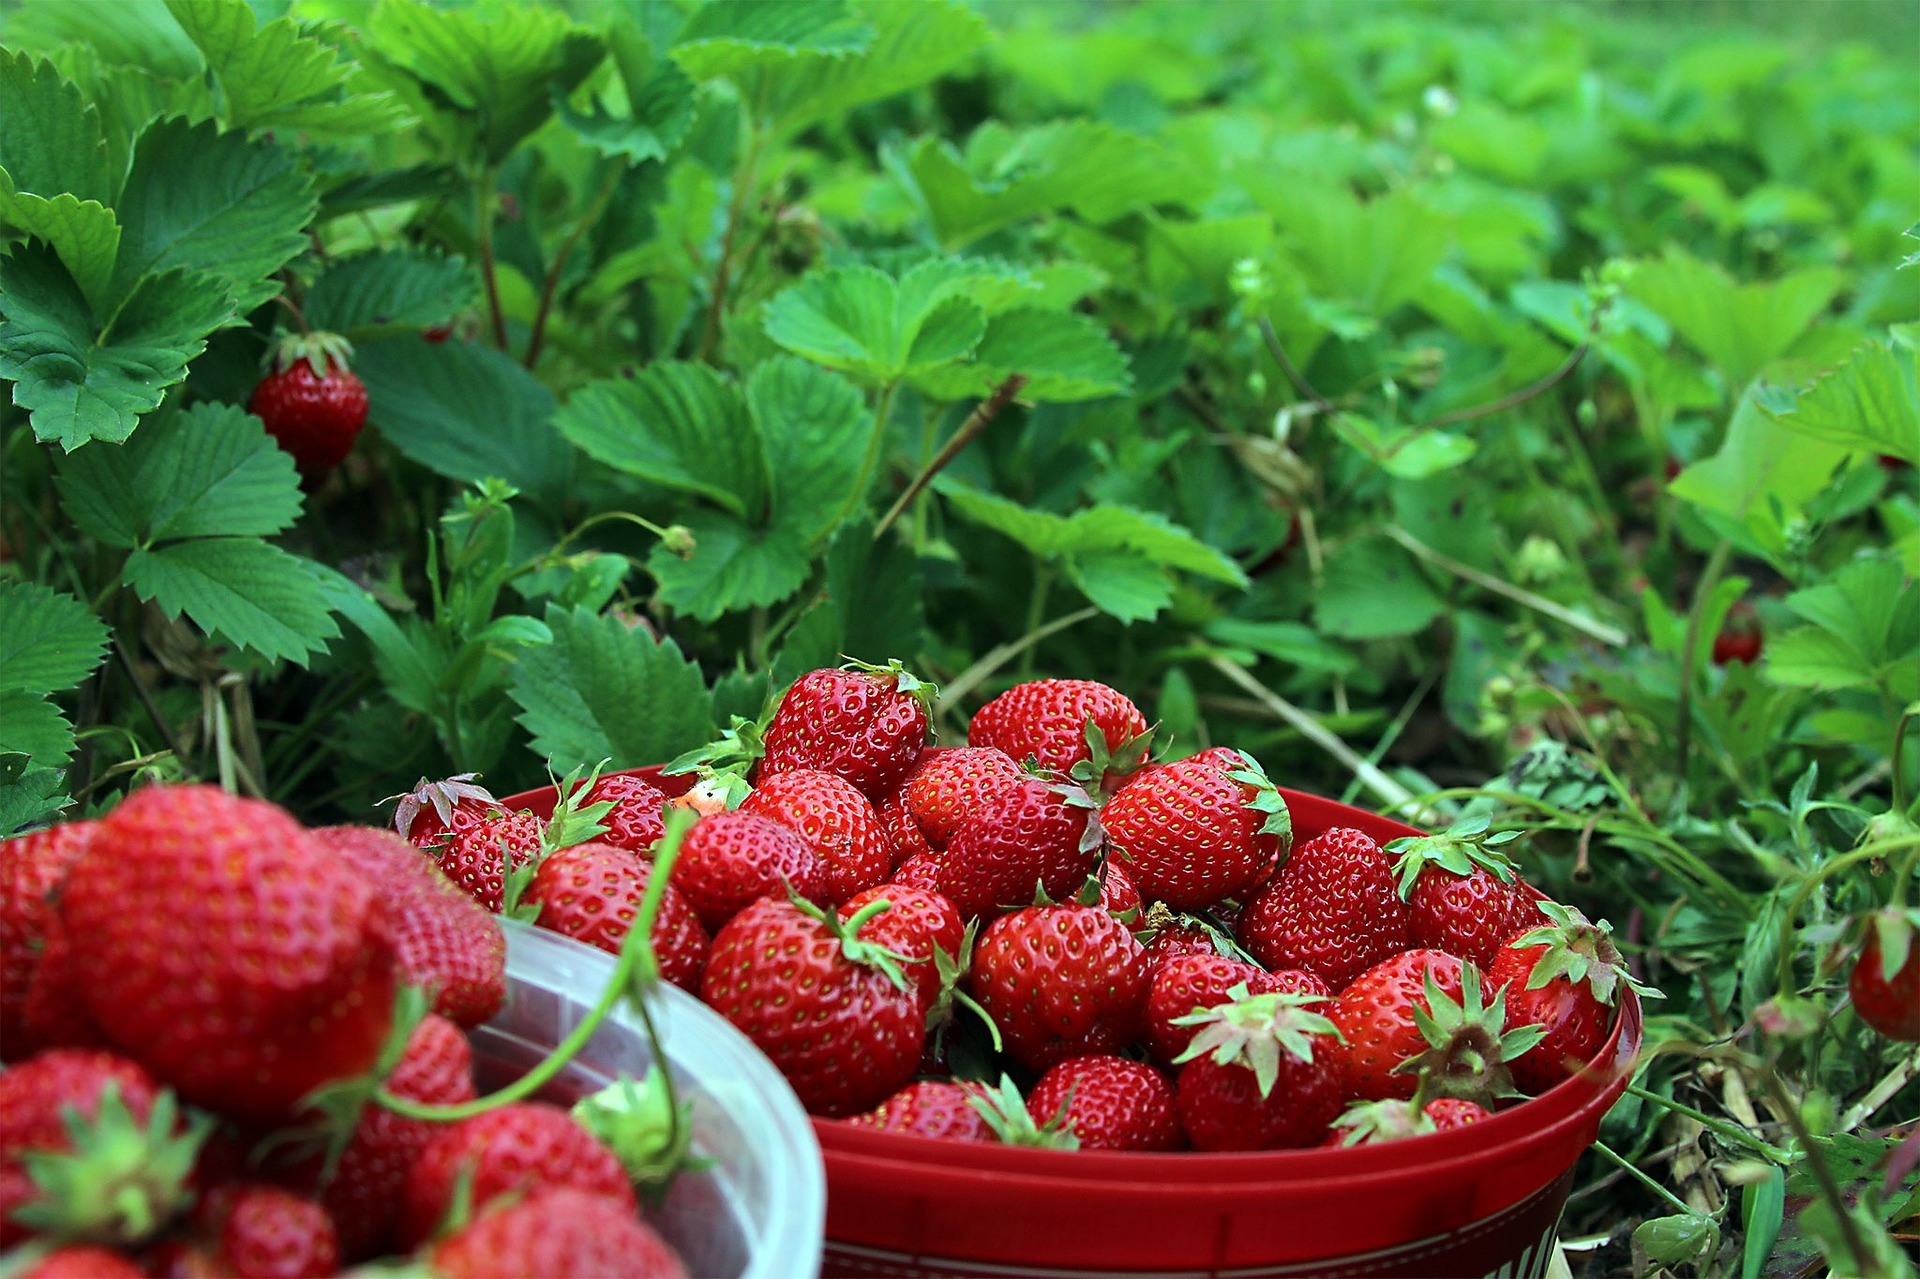 strawberries-1467902_1920